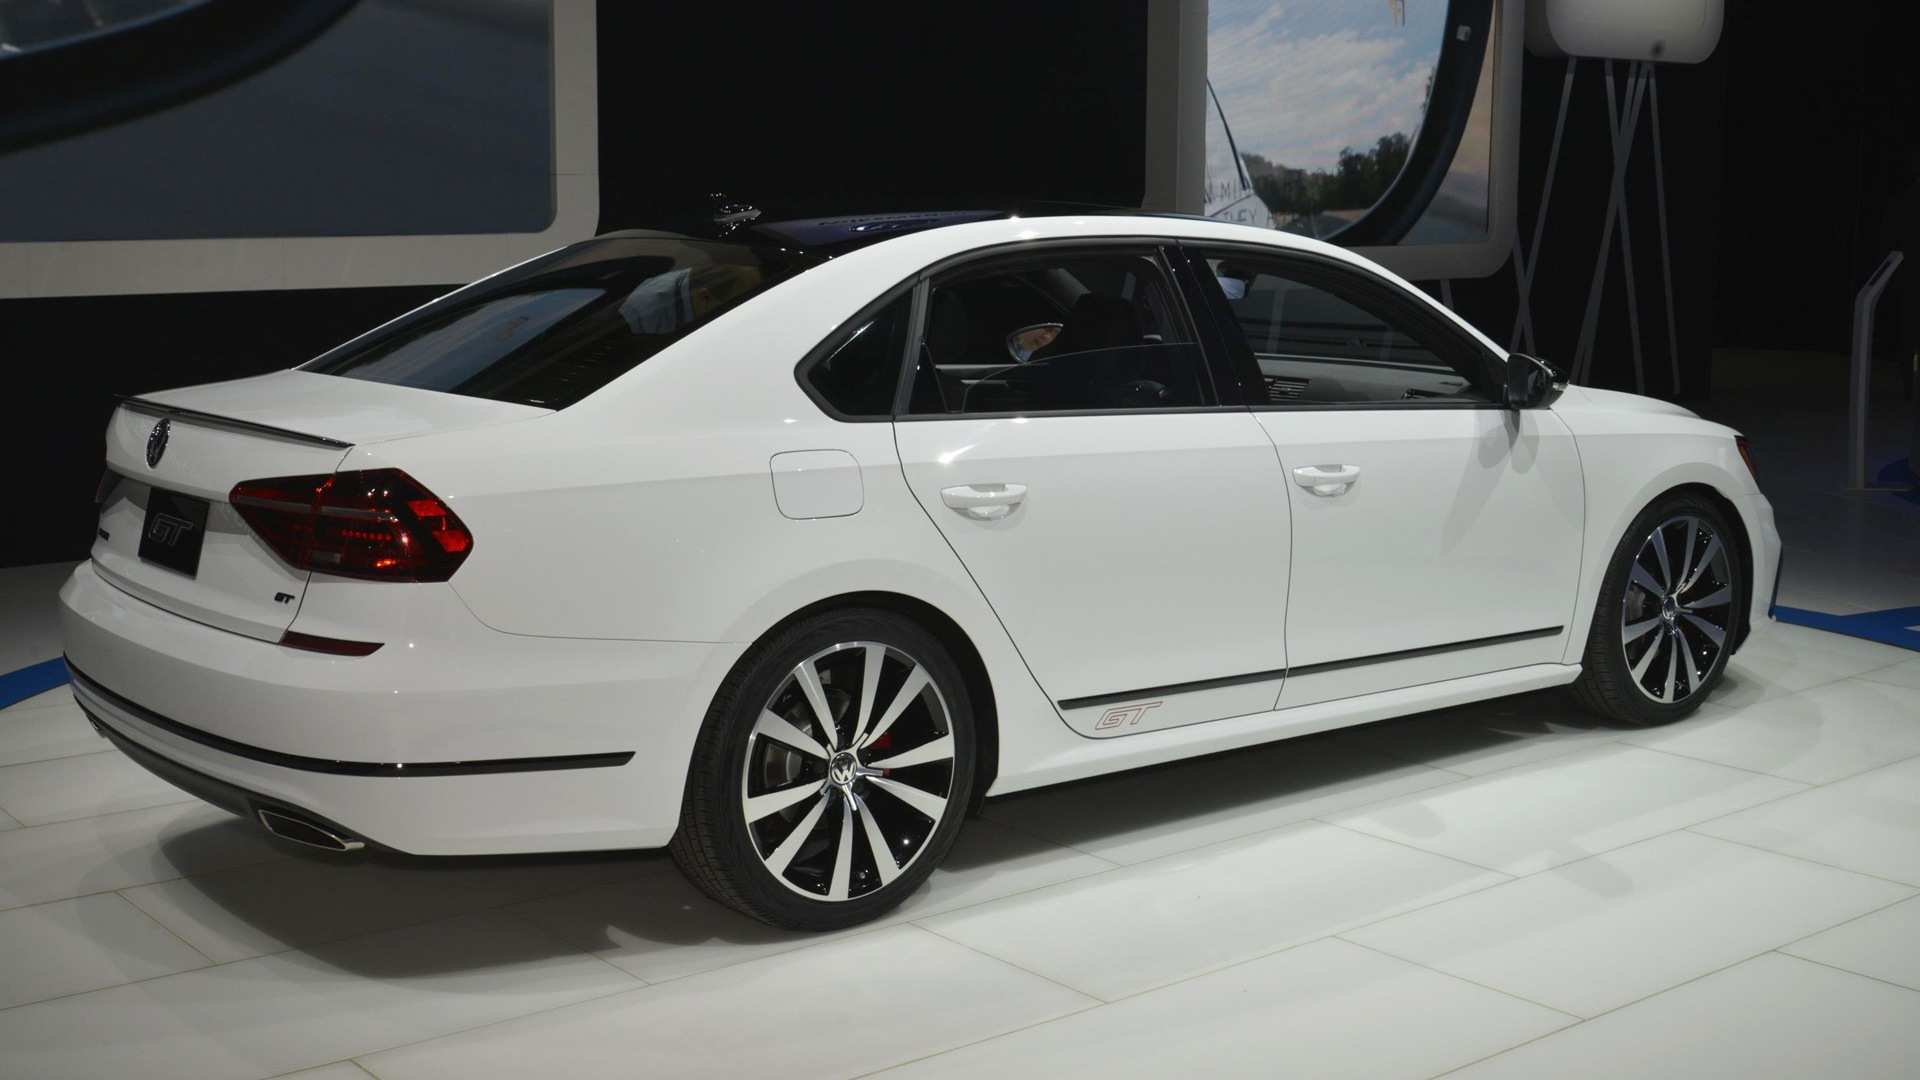 67 The Best Vw Passat Gt 2019 Photos